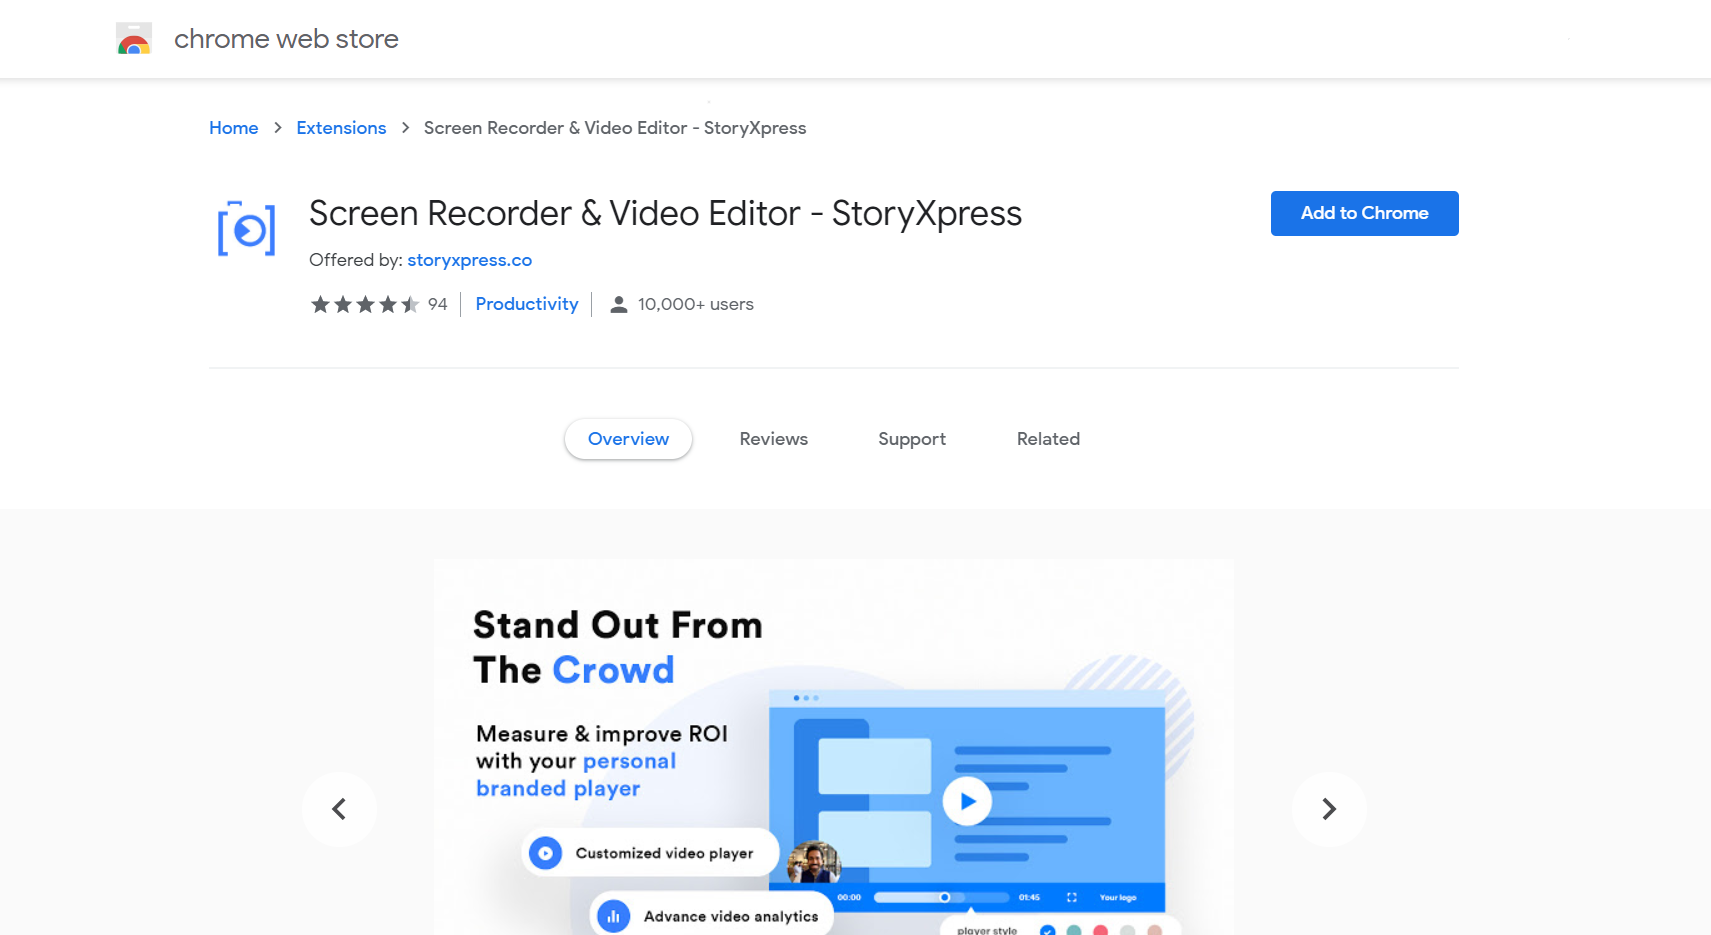 The landing page of a Chrome Extension - StoryXpress Recorder